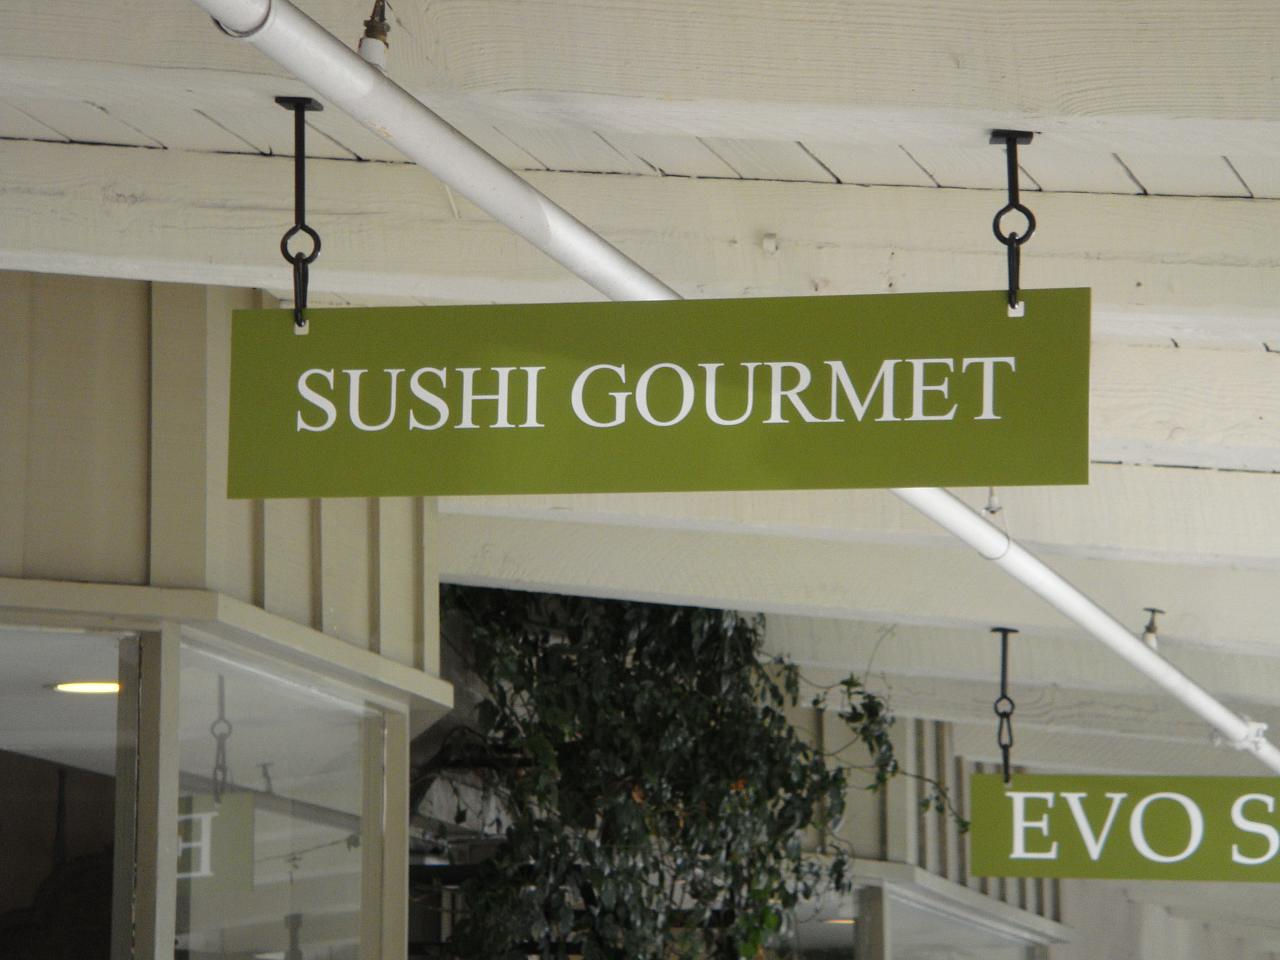 Sushi Gourmet Sign